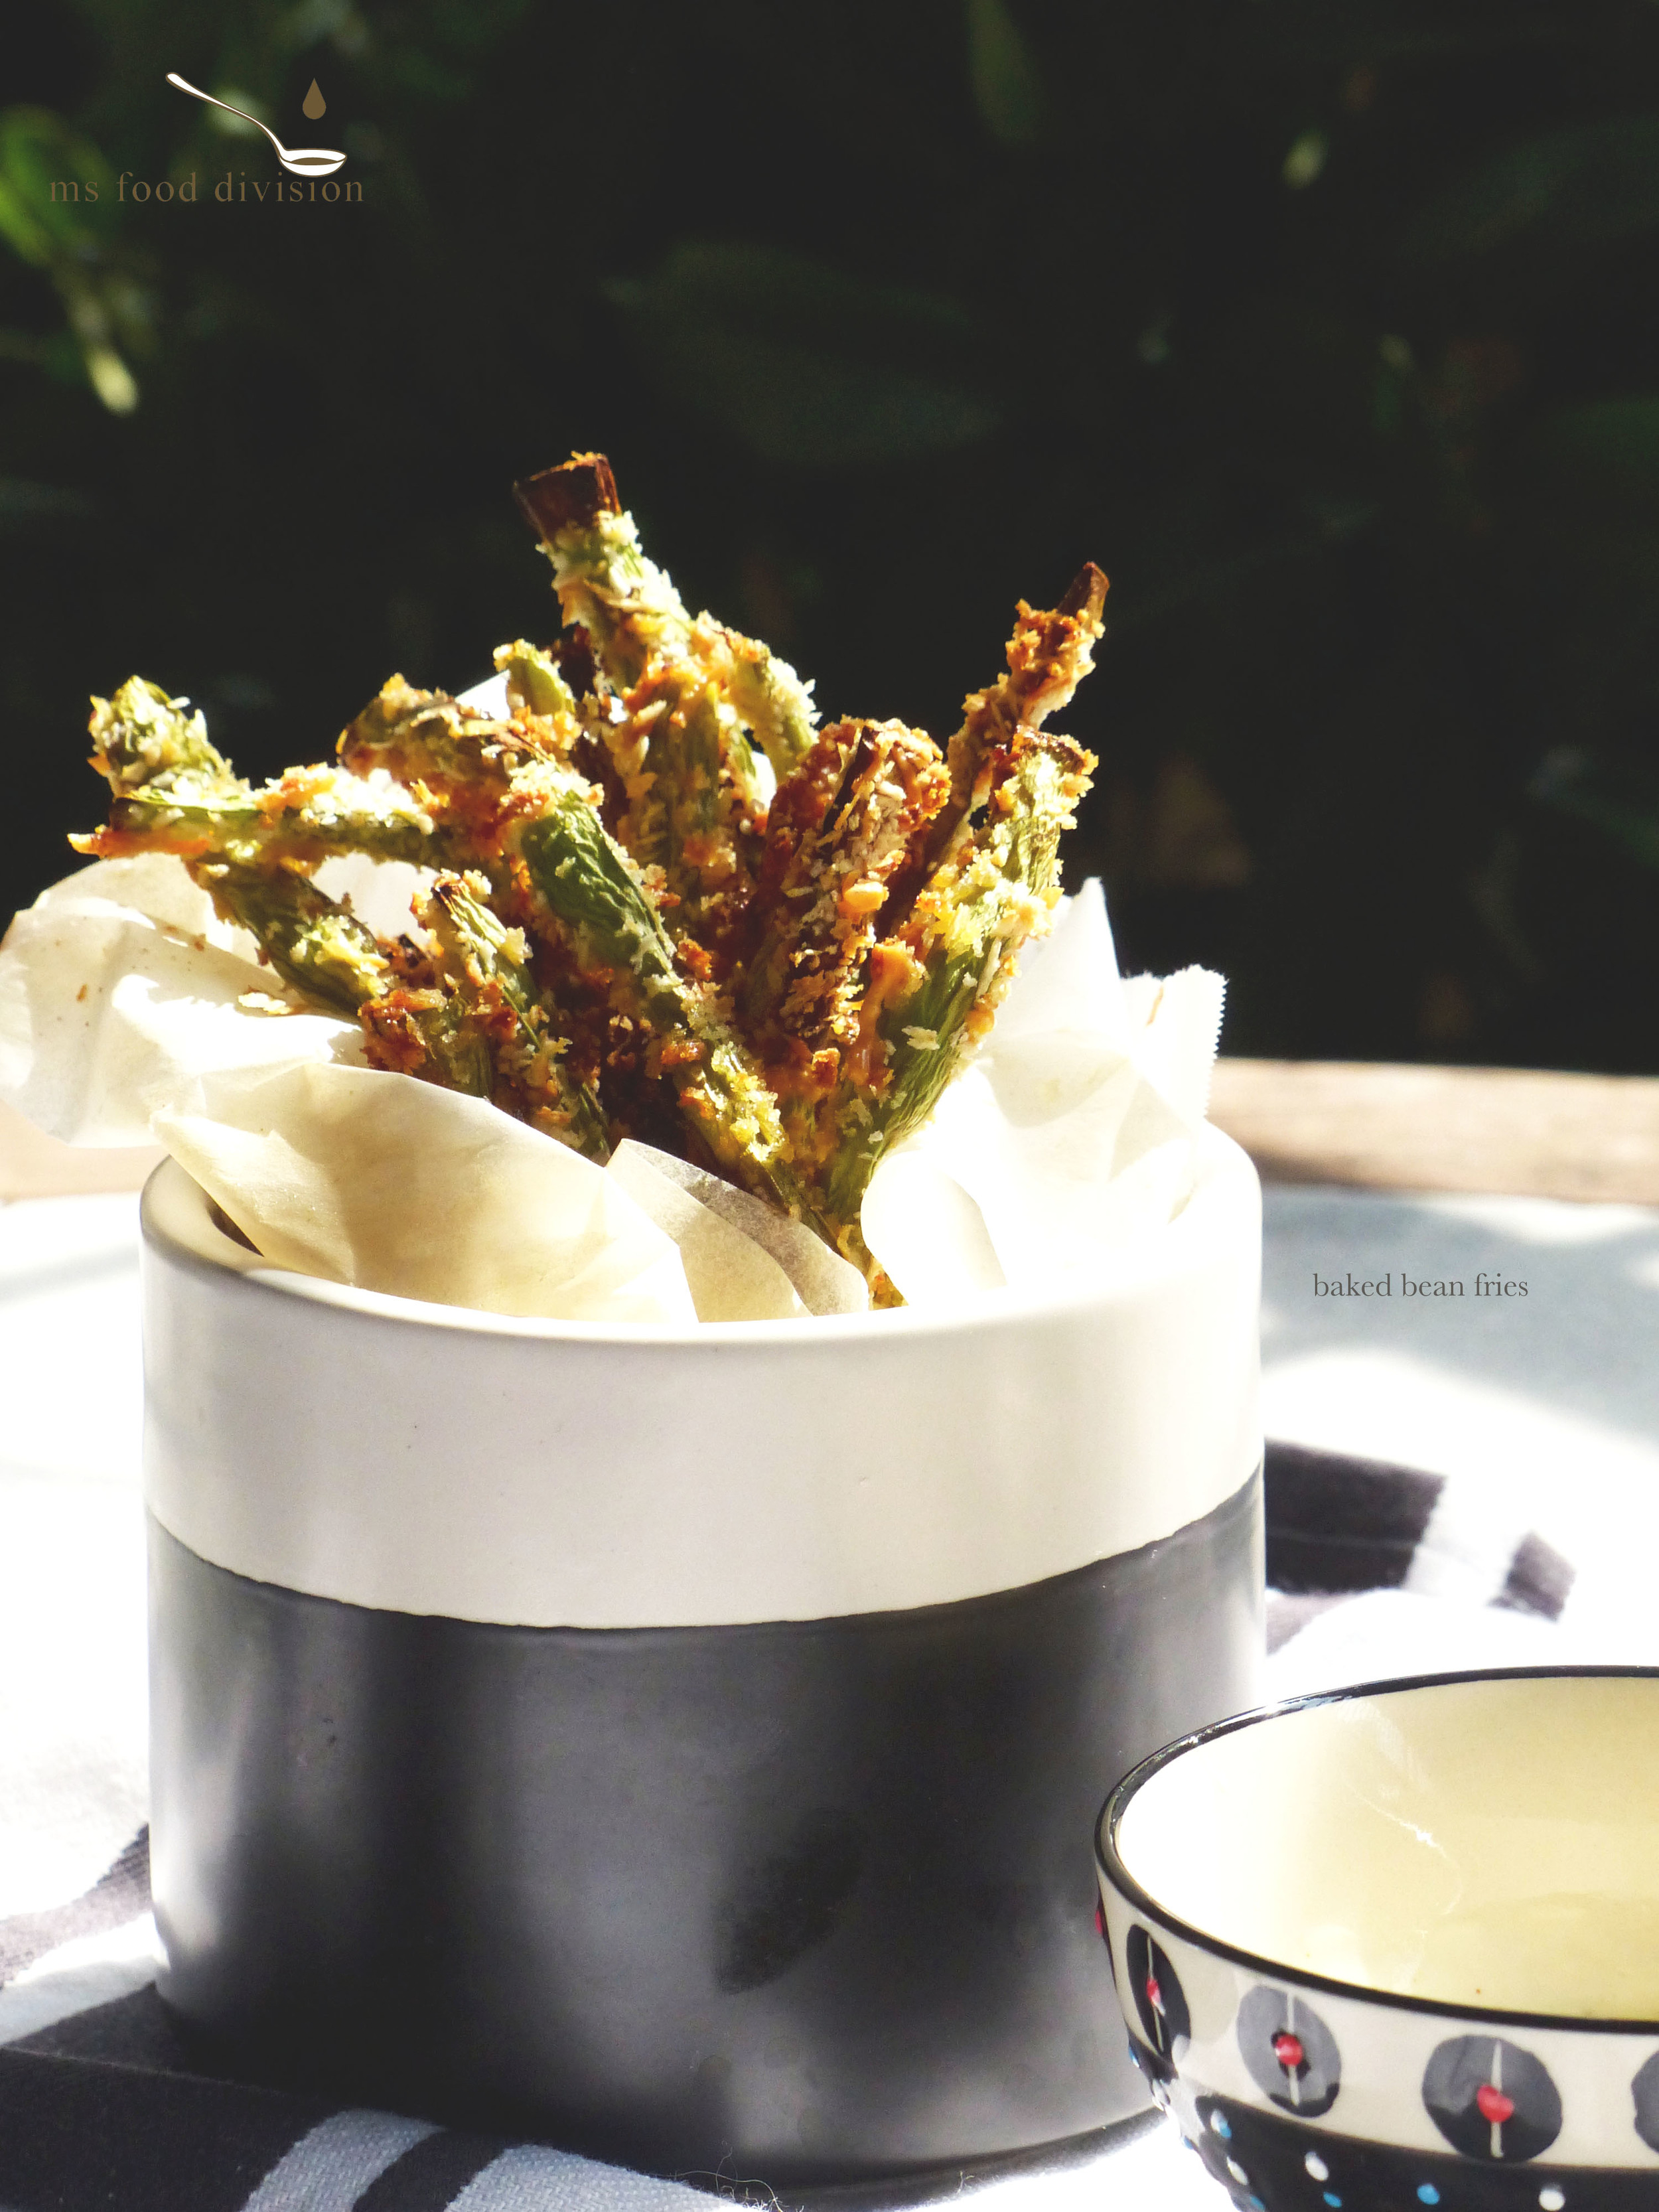 I serve my bean fries with my all time favorite lime aioli. Just a little lime juice with garlic, cayenne powder and mayonnaise.